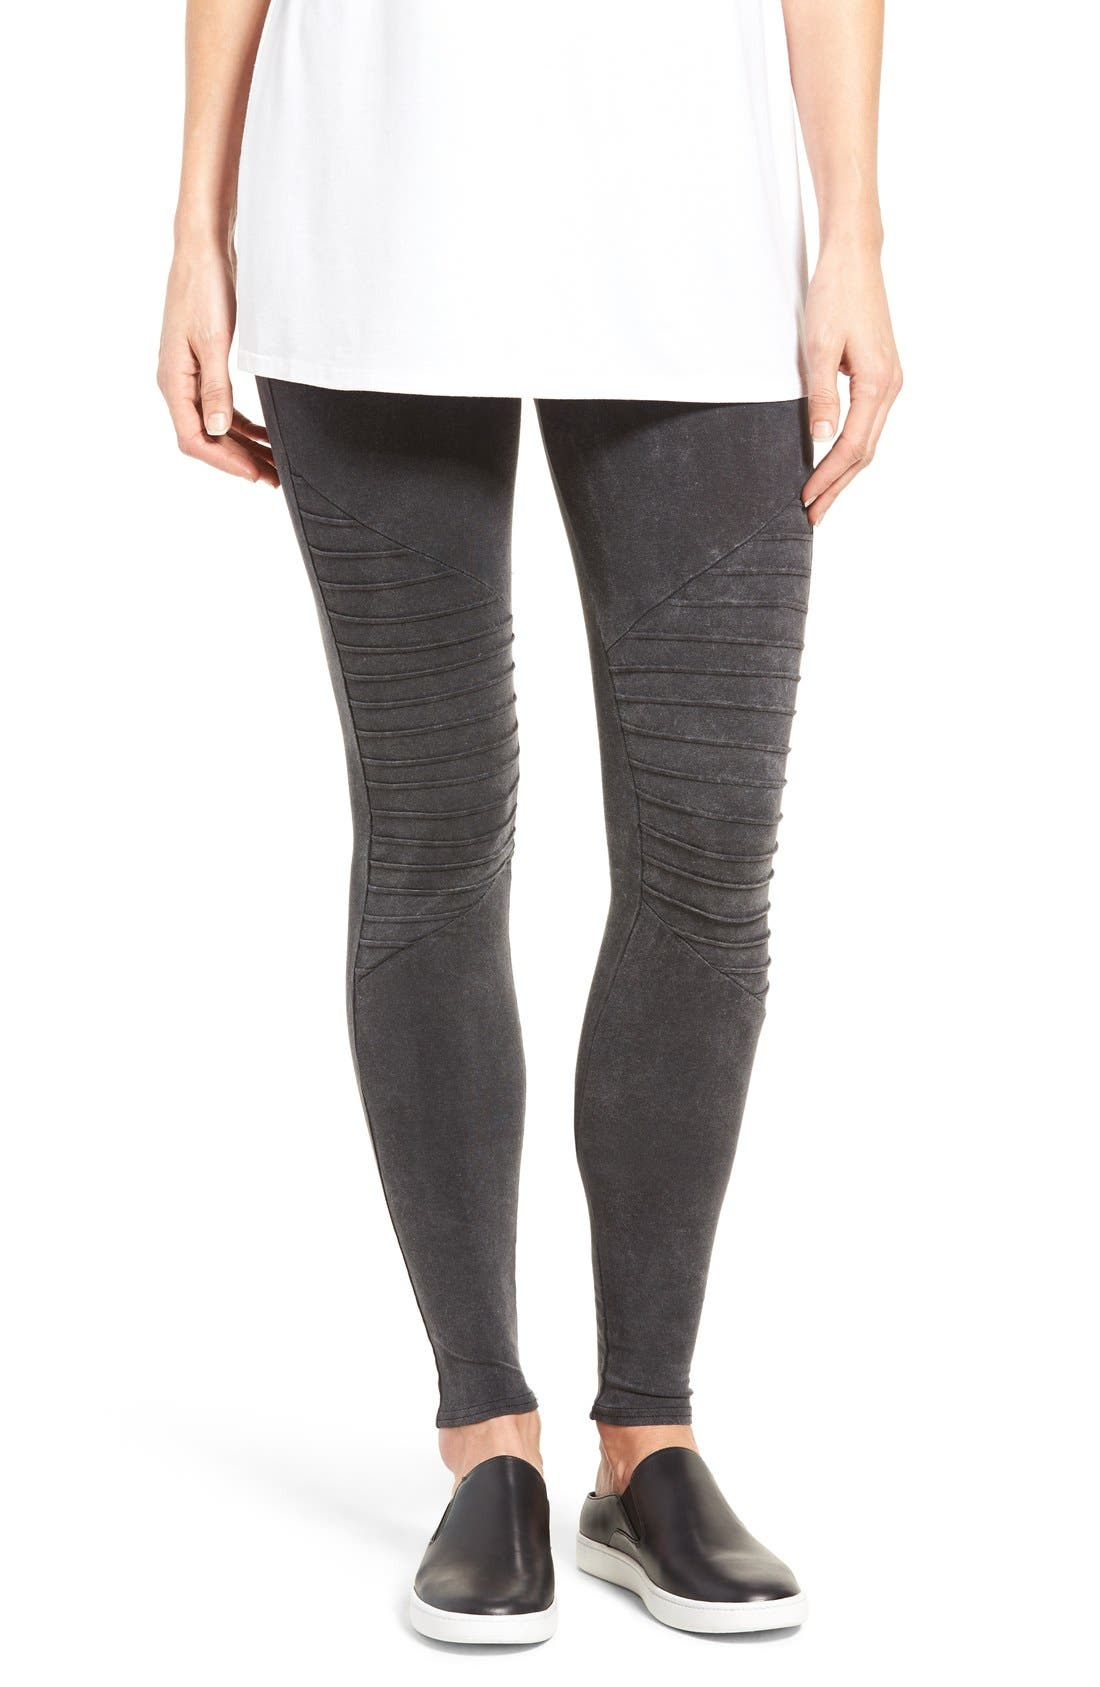 Alternate Image 1 Selected - Nordstrom Moto Washed Cotton Blend Leggings